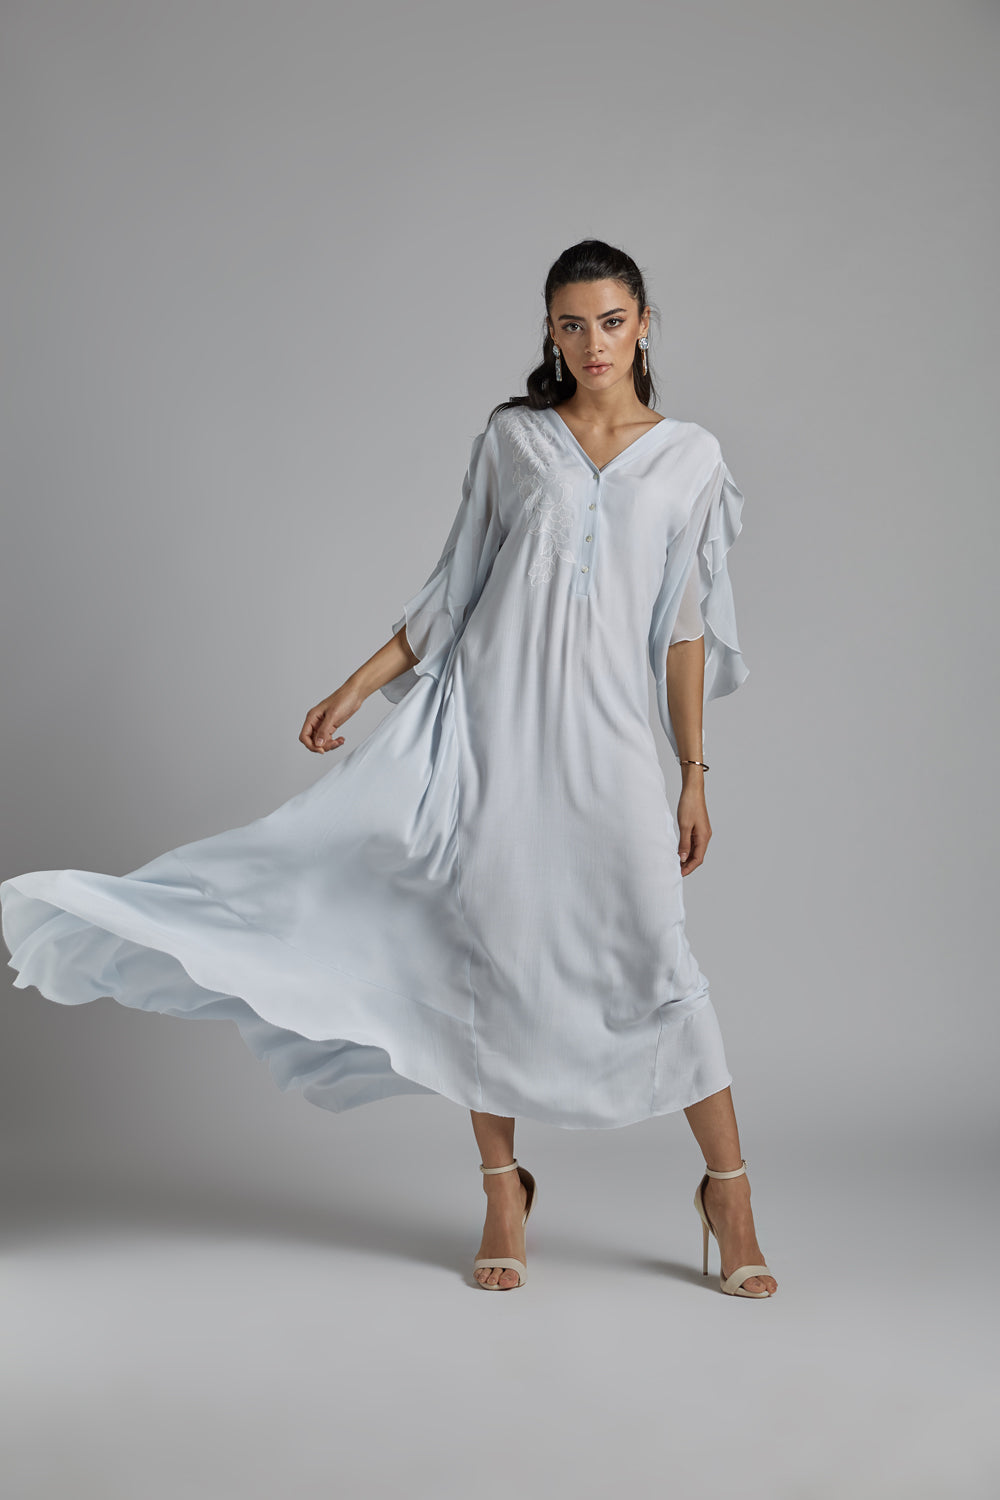 Silk Chiffon Baby Blue Dress - Oh My!